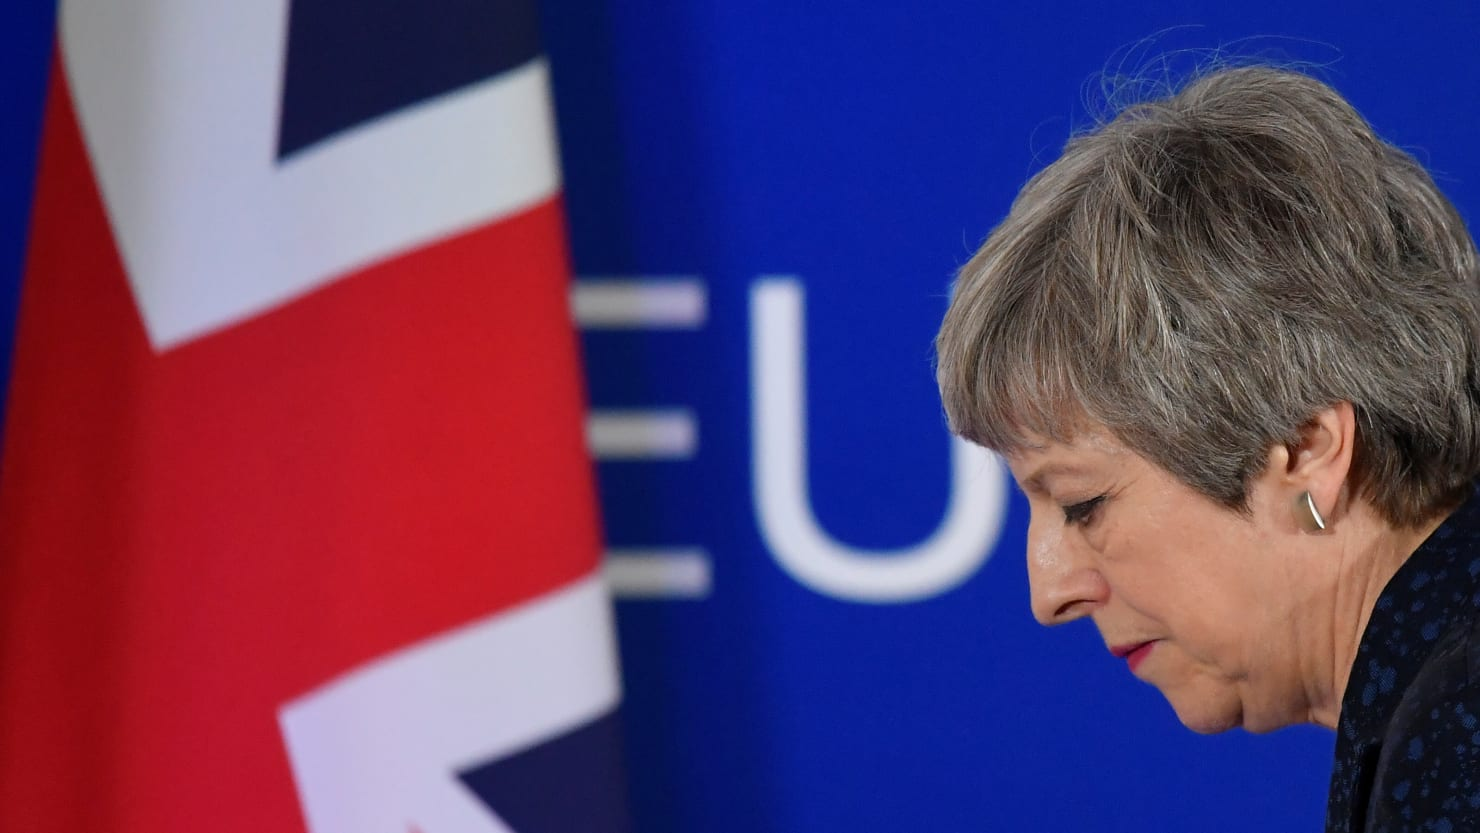 EU Throws Britain a Lifeline With Two Week Brexit Delay